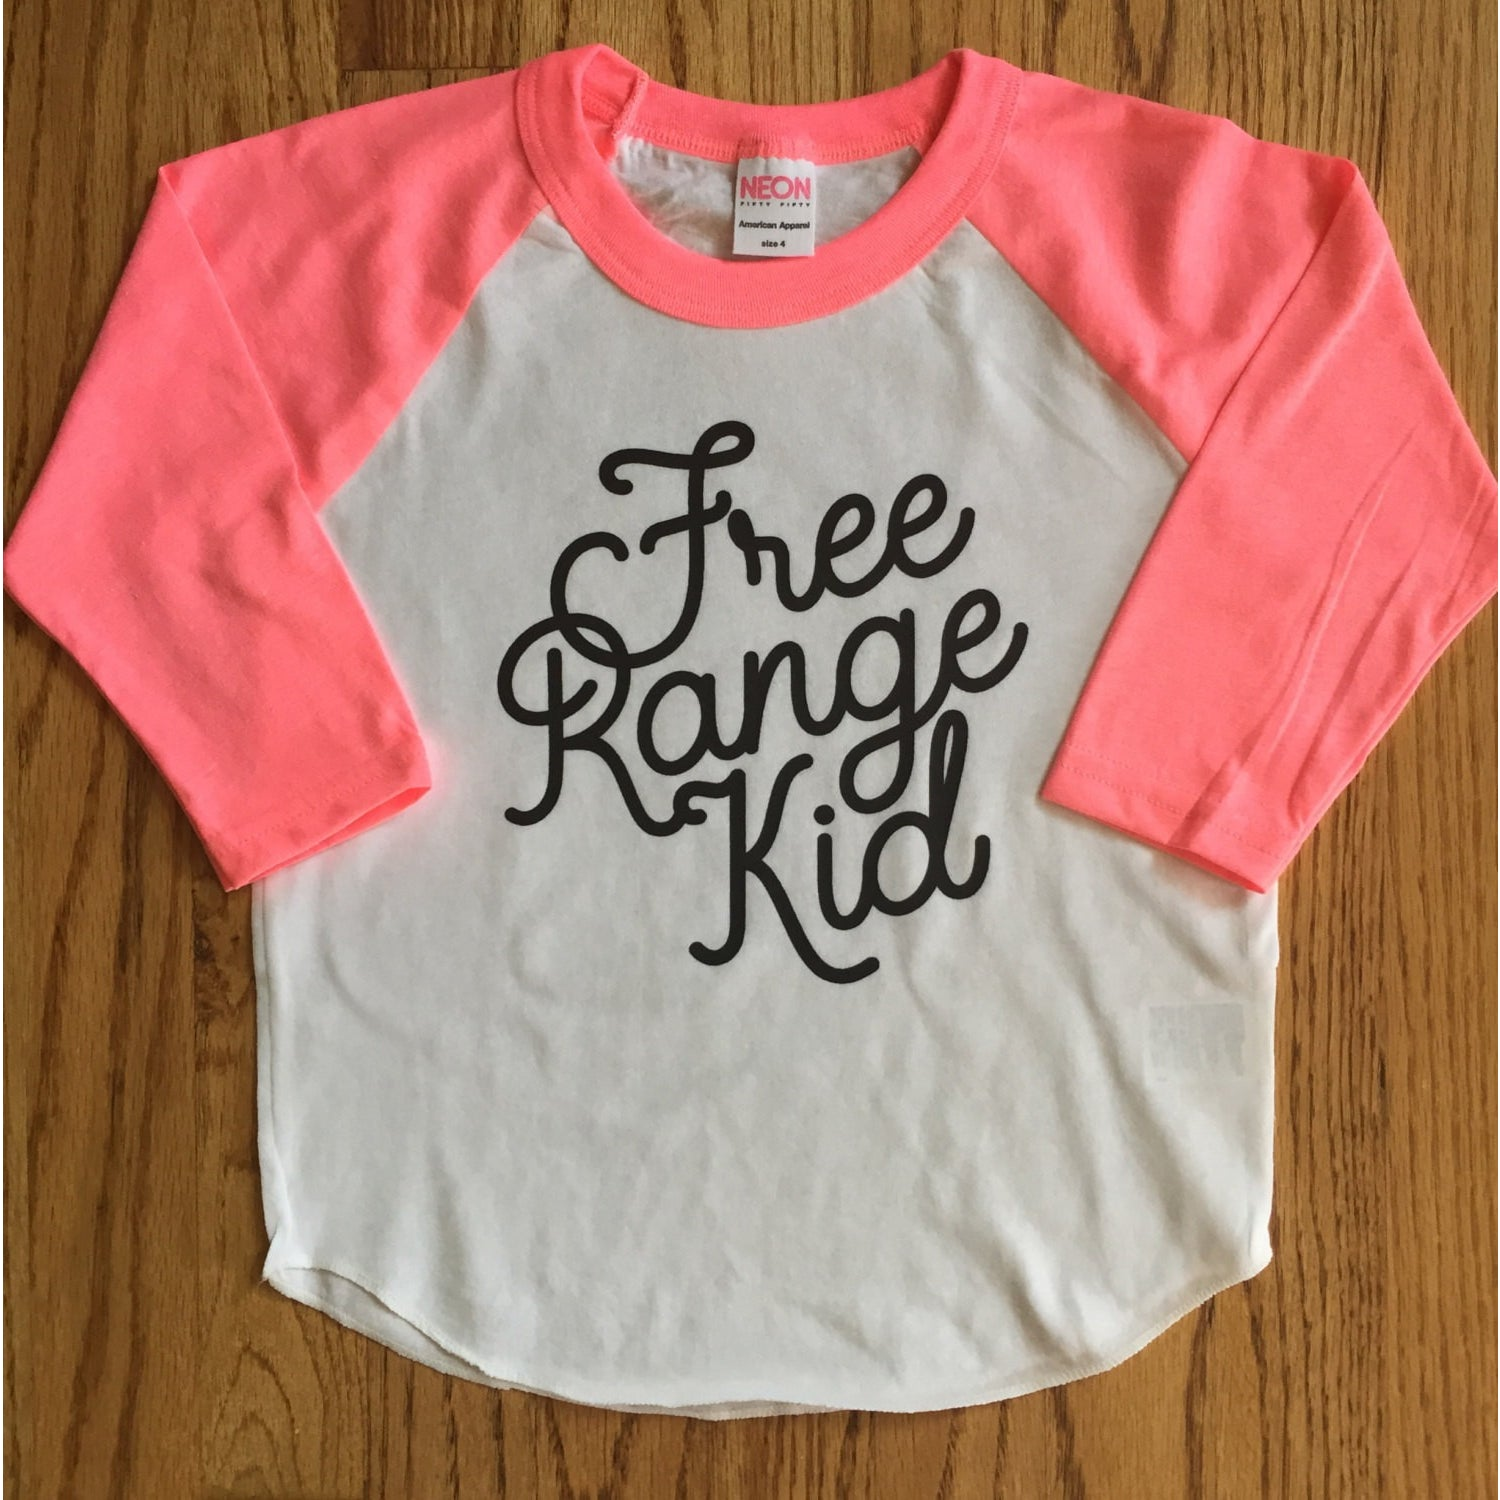 Free Range Kid Graphic Tshirt for Free Range Children and Toddlers